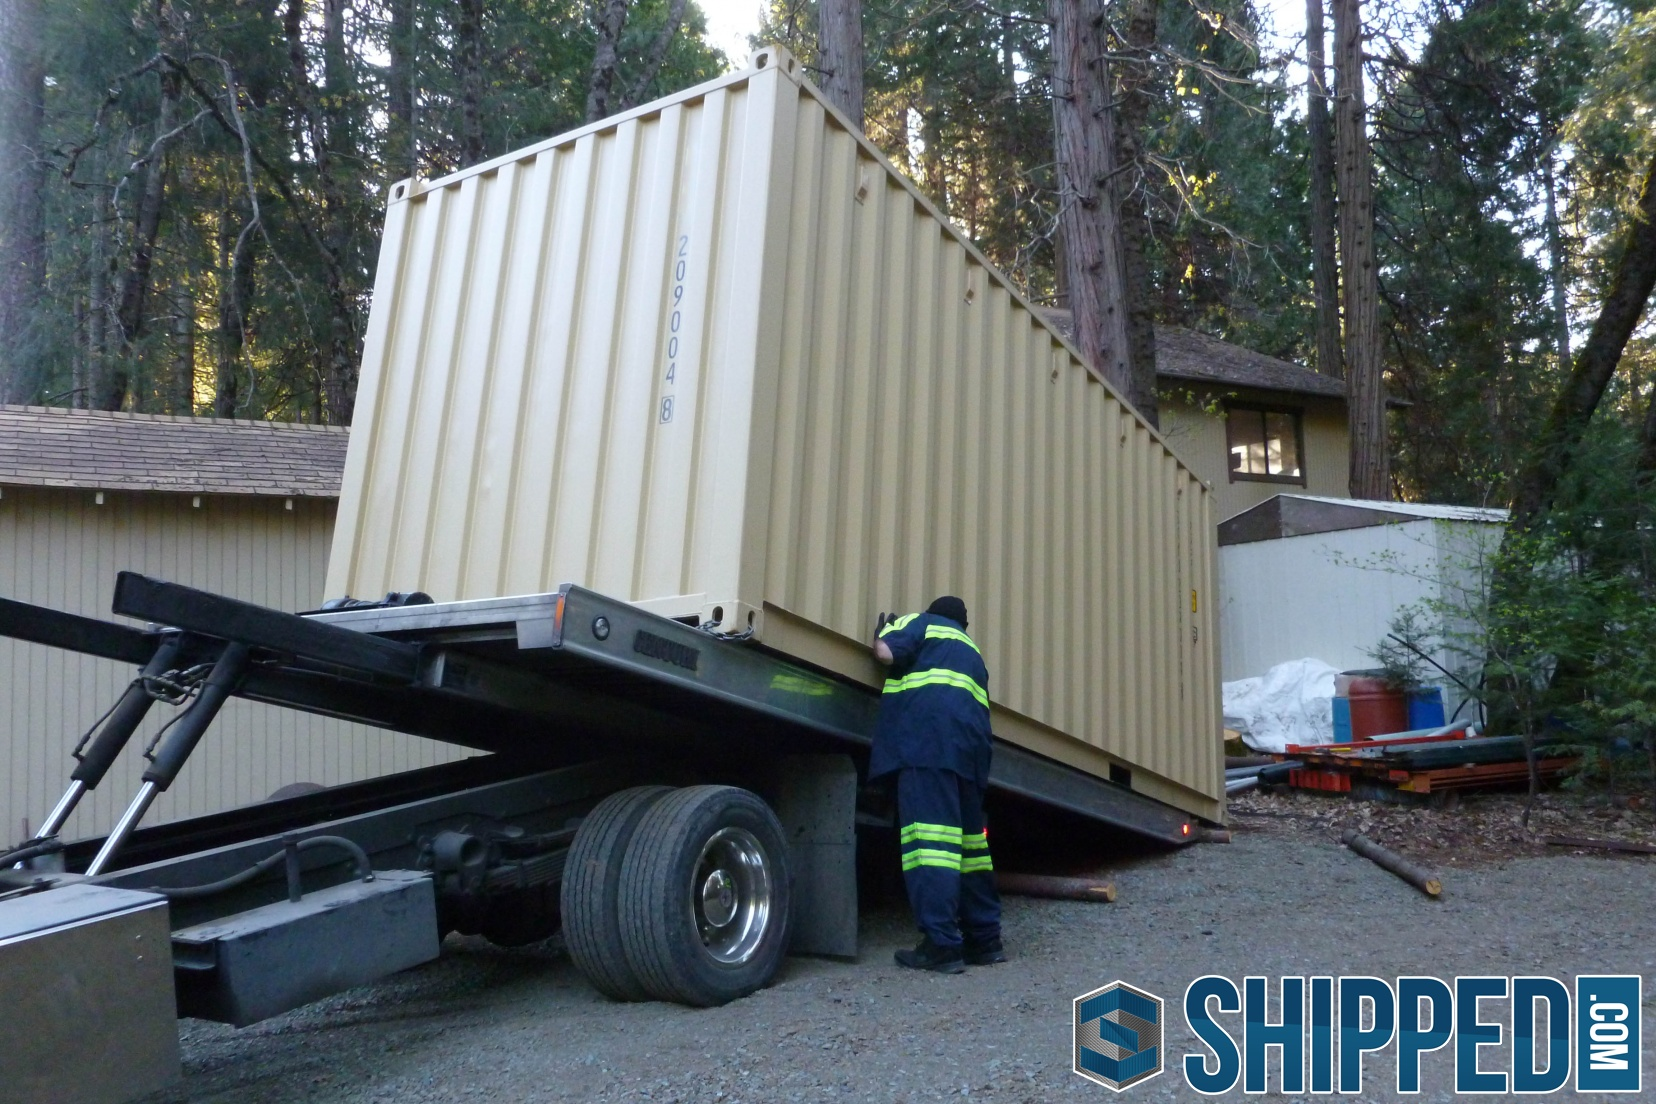 shipping container being unloaded in the backyard